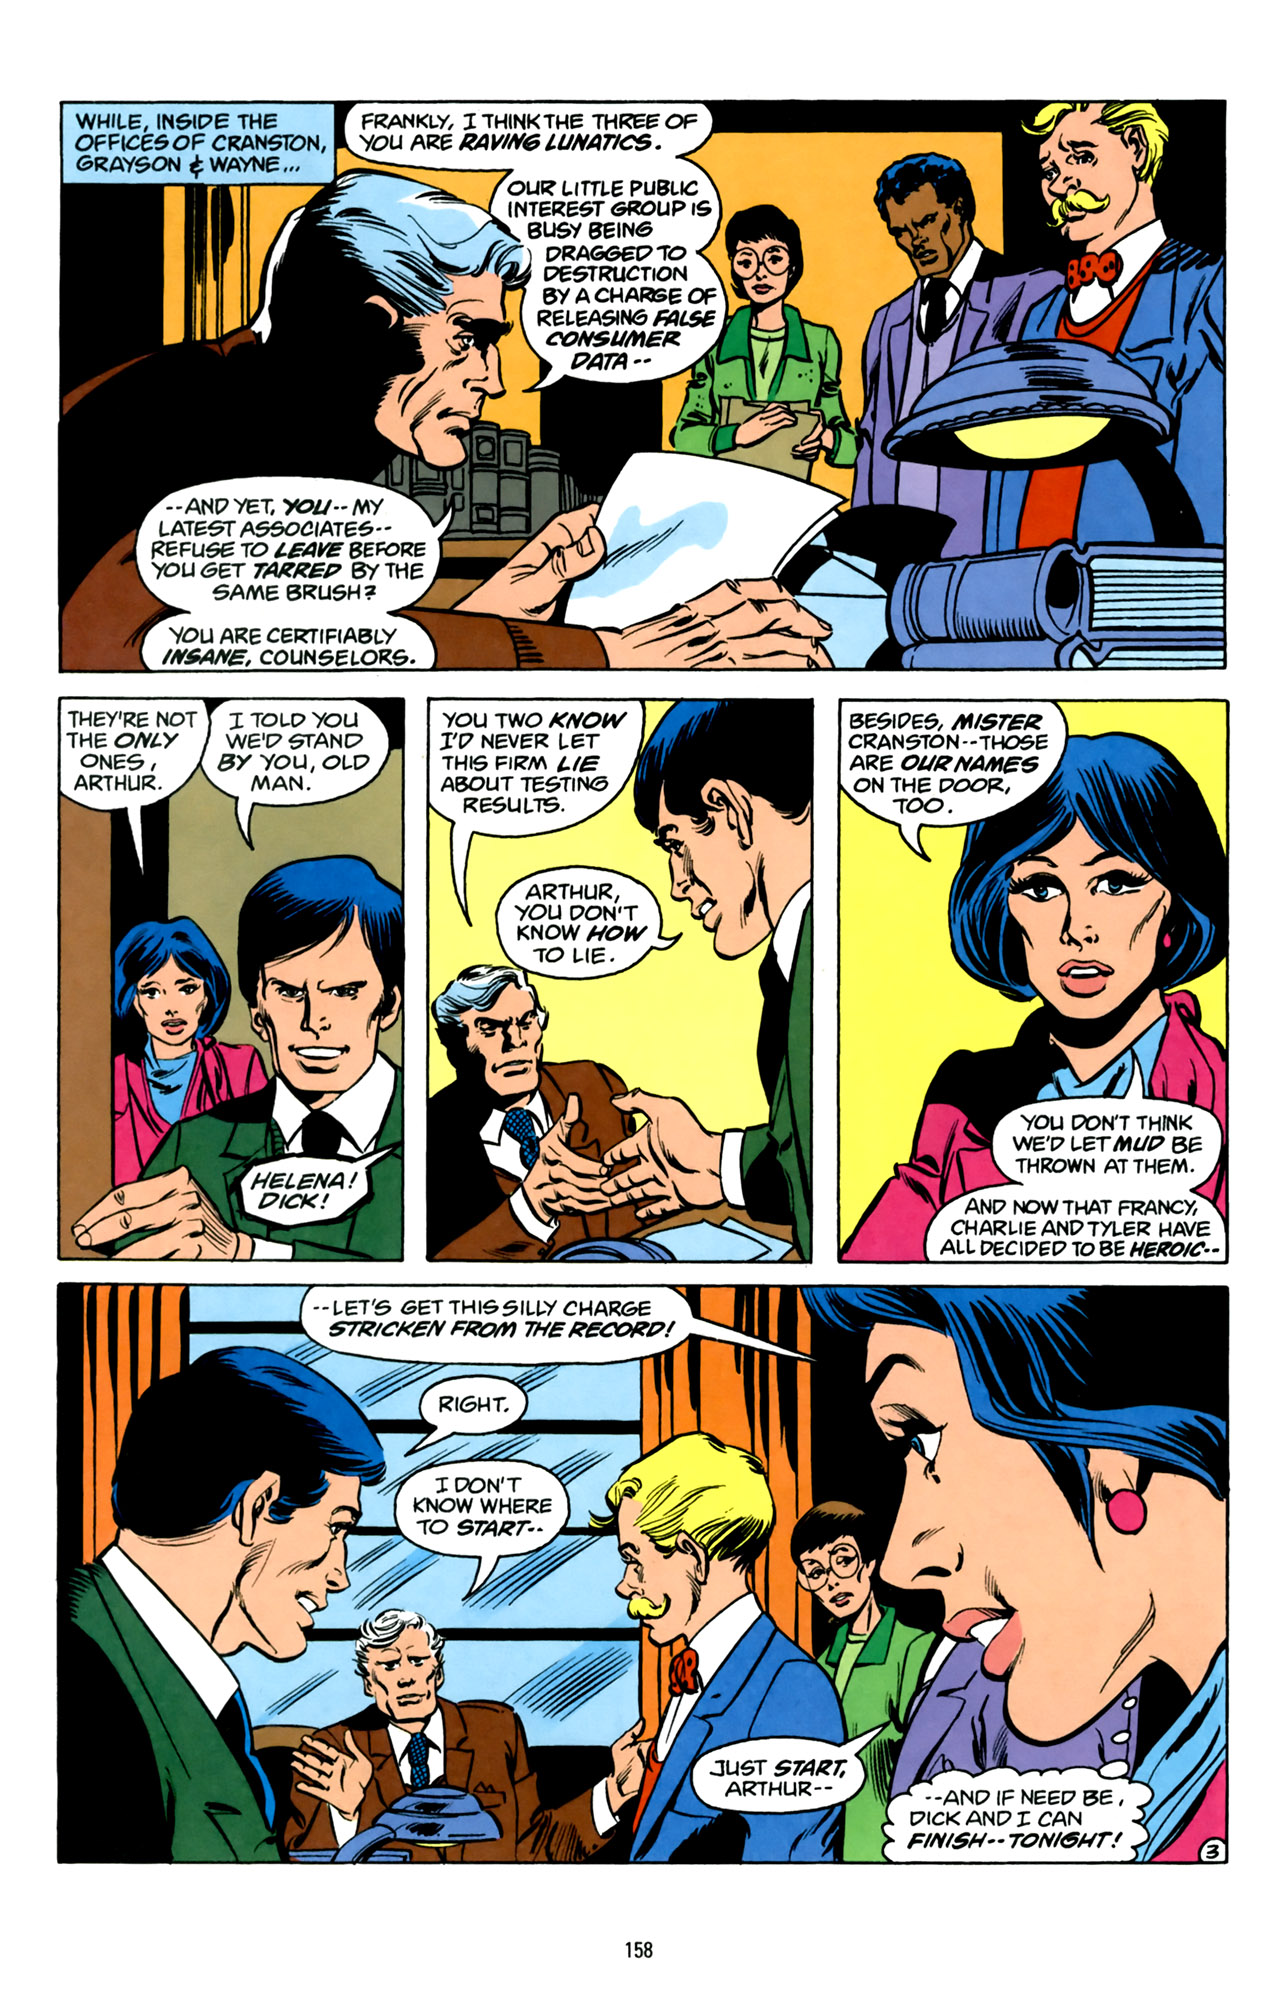 Part of what makes classic Helena Wayne such a compelling character is her status as a superhero and a working lawyer.